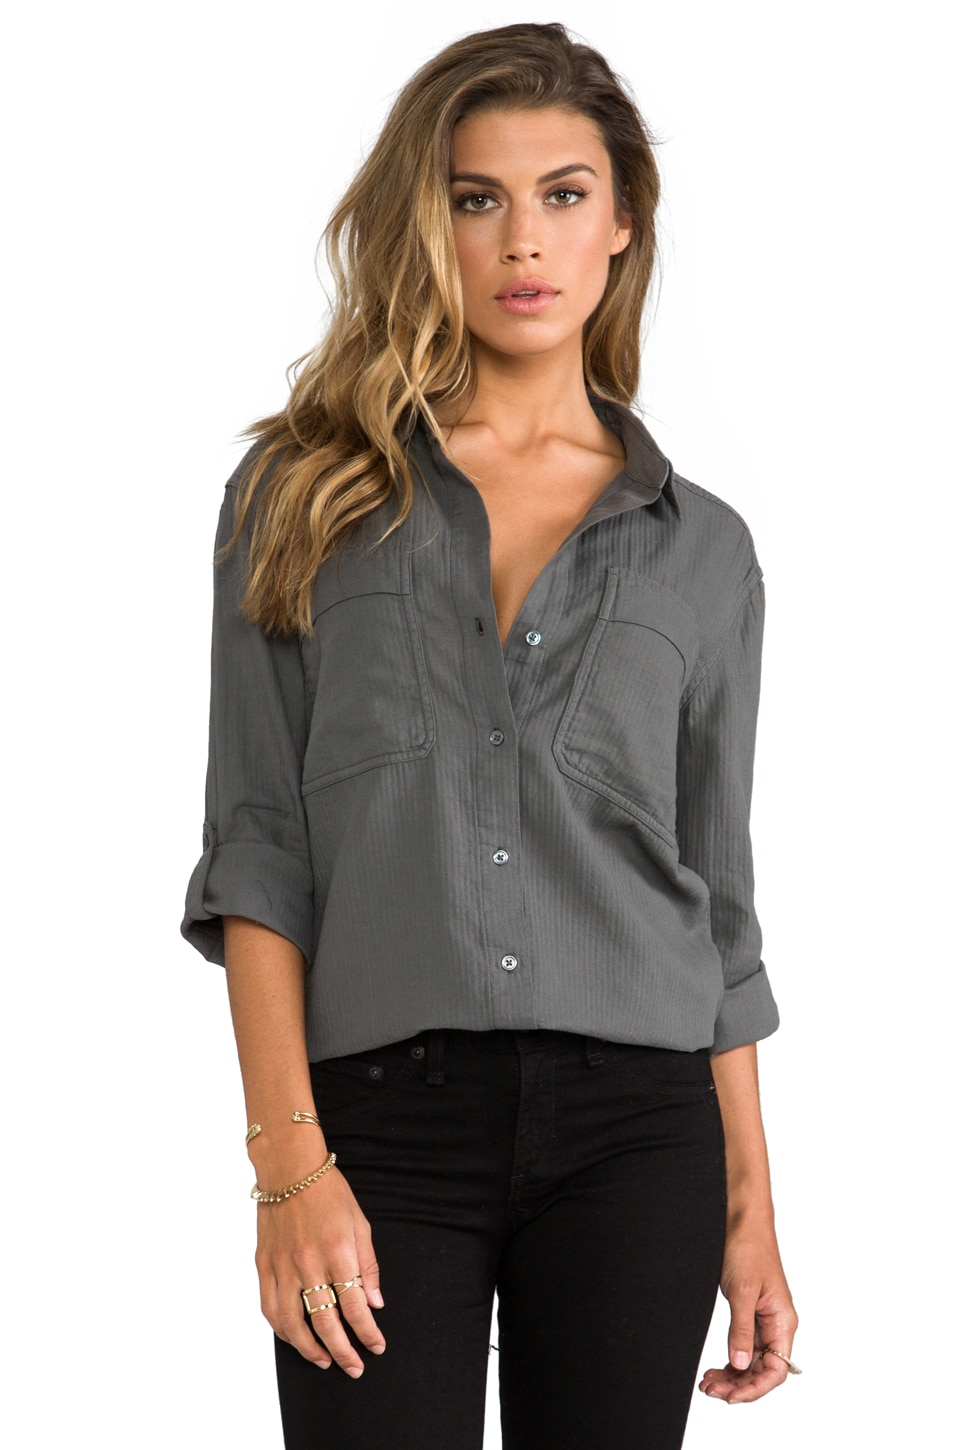 James Perse Crinkle Herringbone Surplus Button Down in Jungle